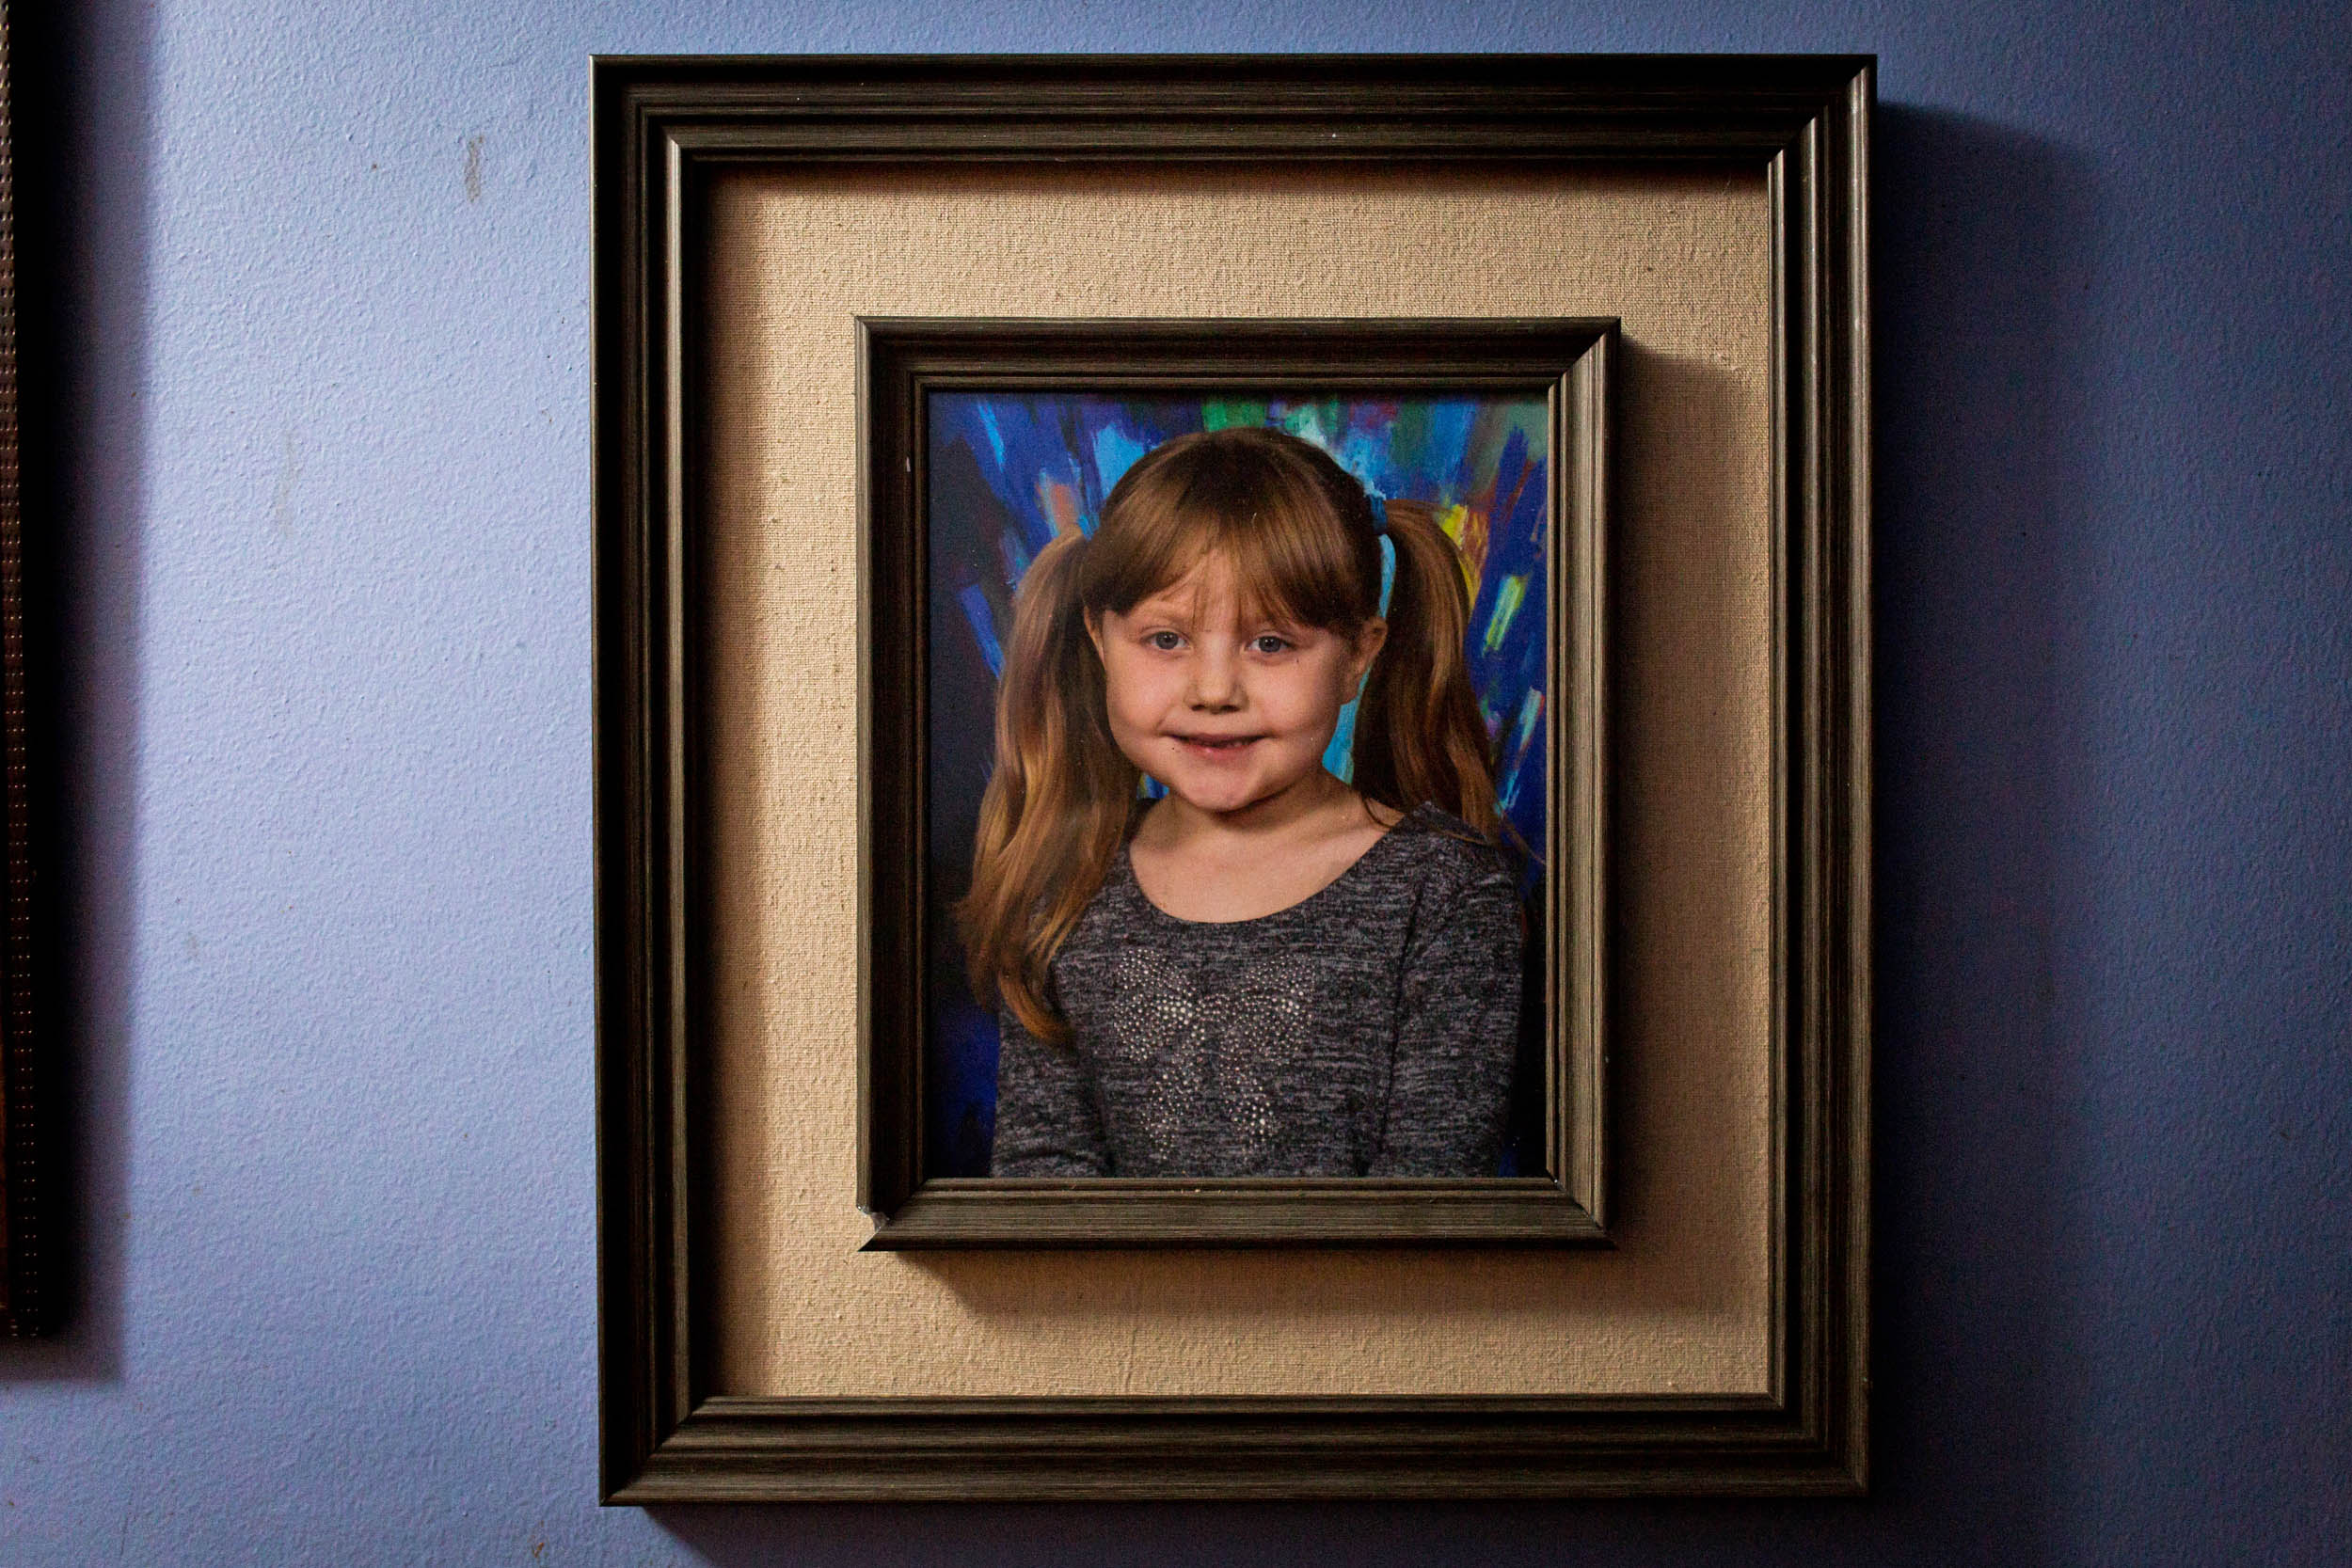 A picture of Kaylee Marshfield, 5, taken only months before being diagnosed with cancer, hangs in the hallway of the Marshfield home. (Photo by Maranie Staab/GroundTruth)